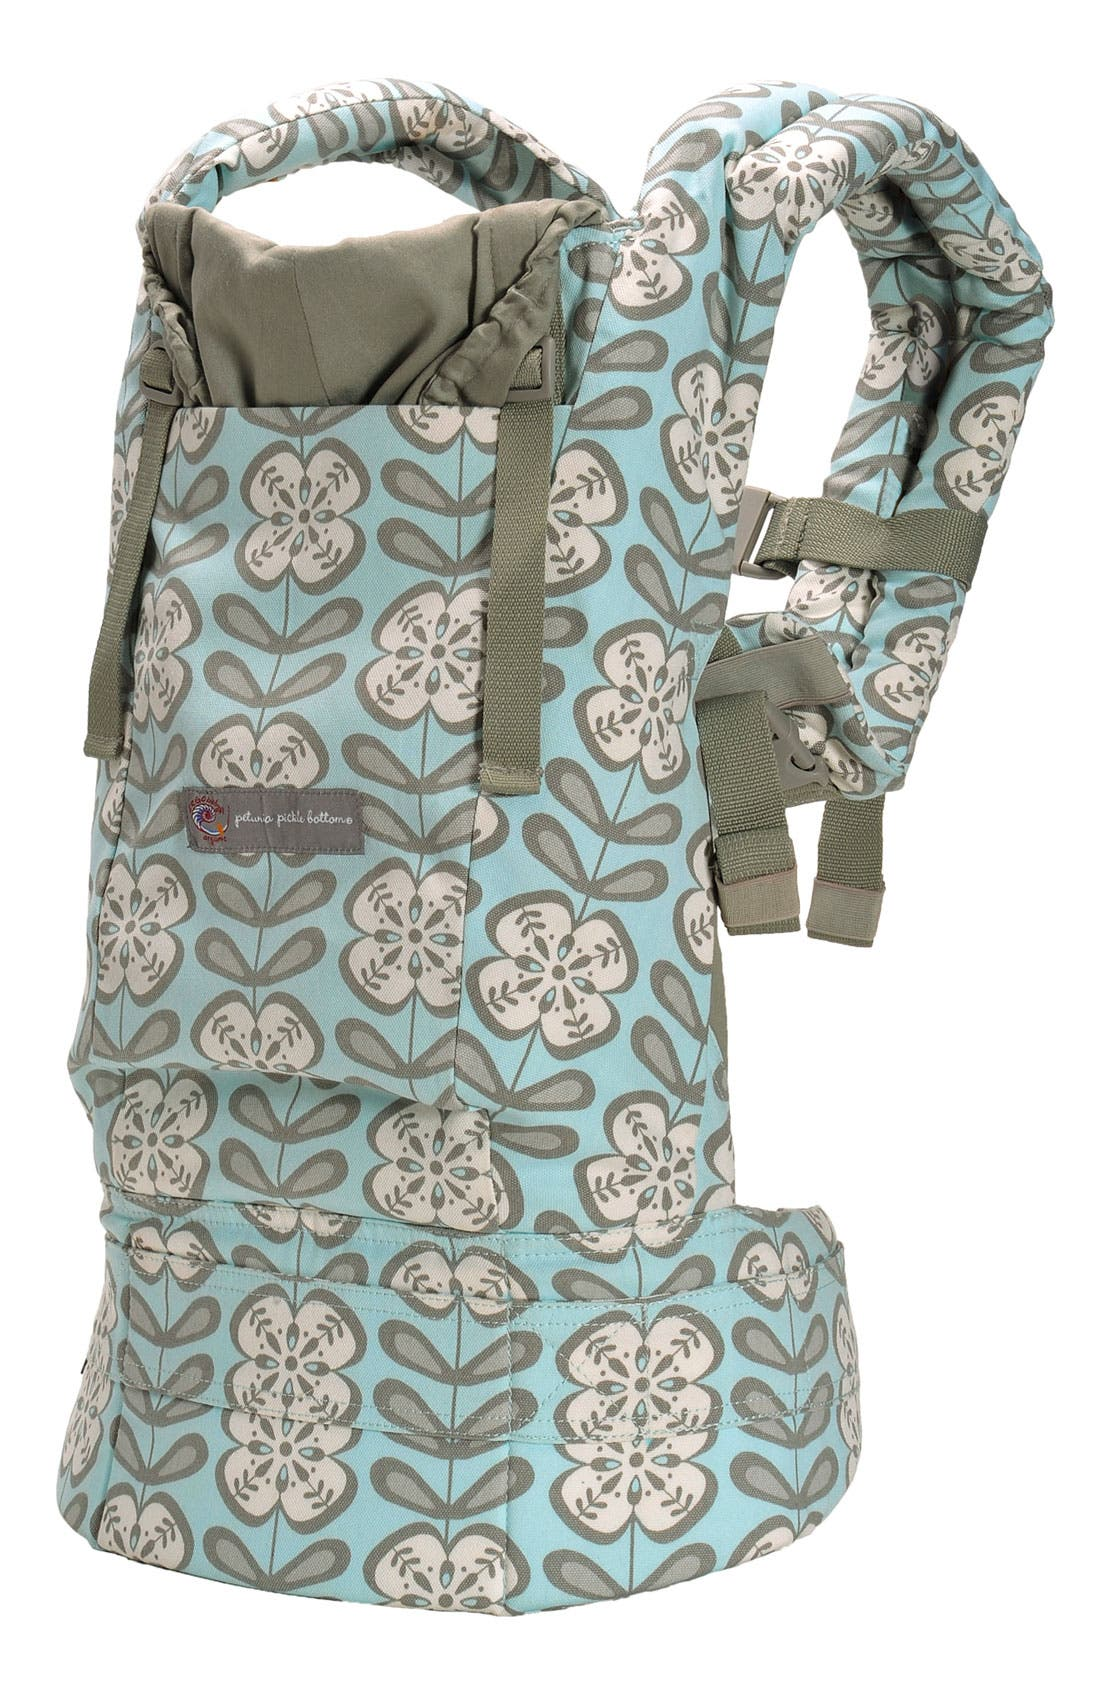 Alternate Image 1 Selected - ERGObaby Baby Carrier with Petunia Pickle Bottom Print